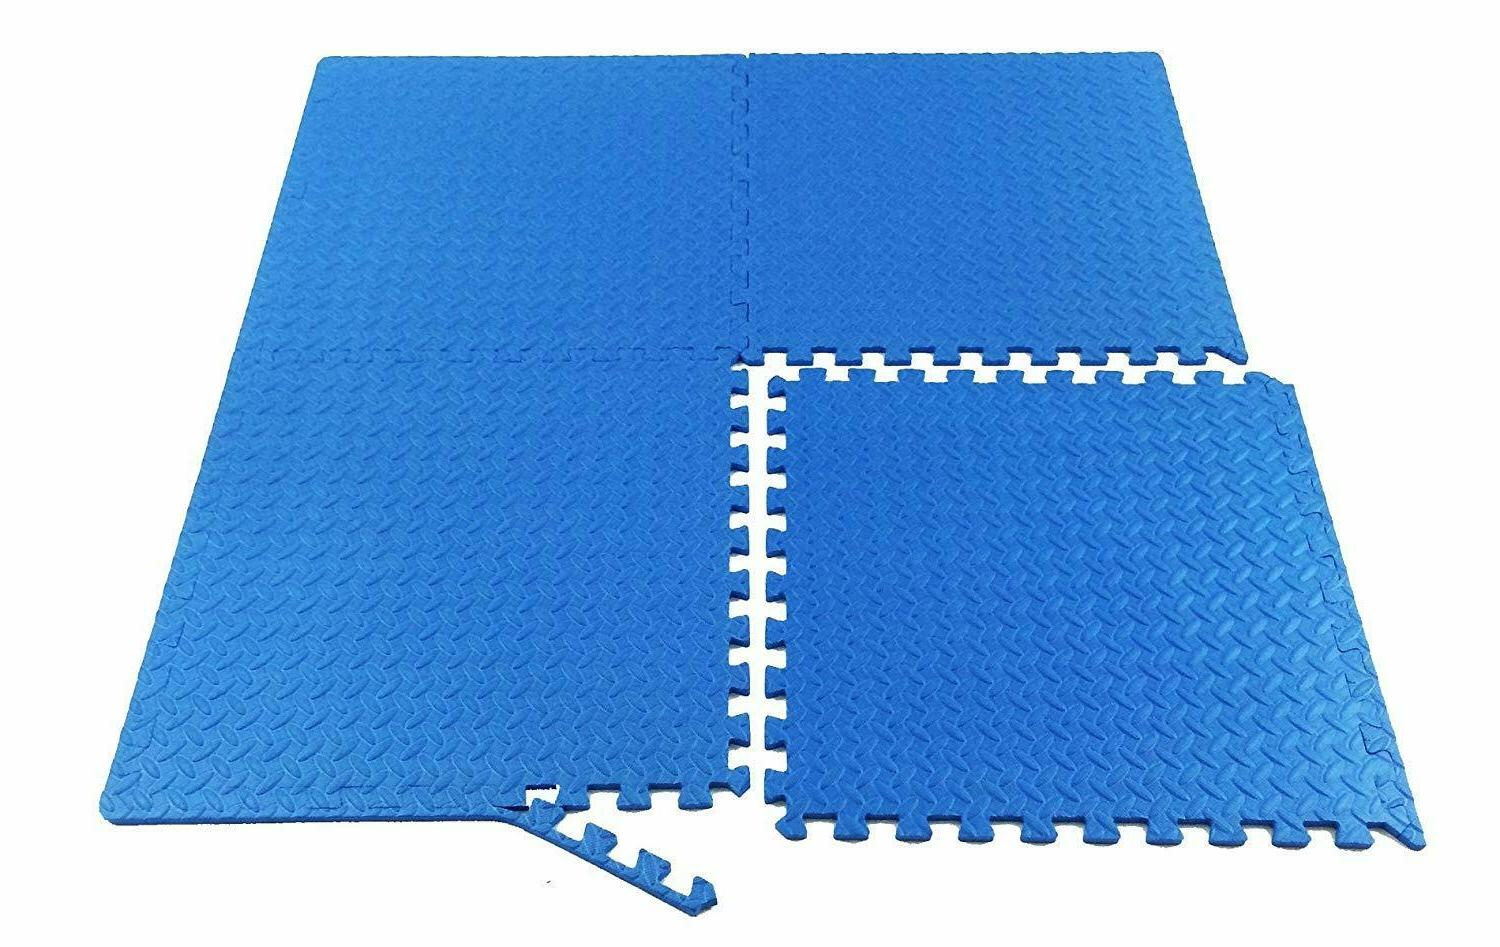 Interlocking Rubber Gym Fitness Exercise Floor Mat 24 SQFt